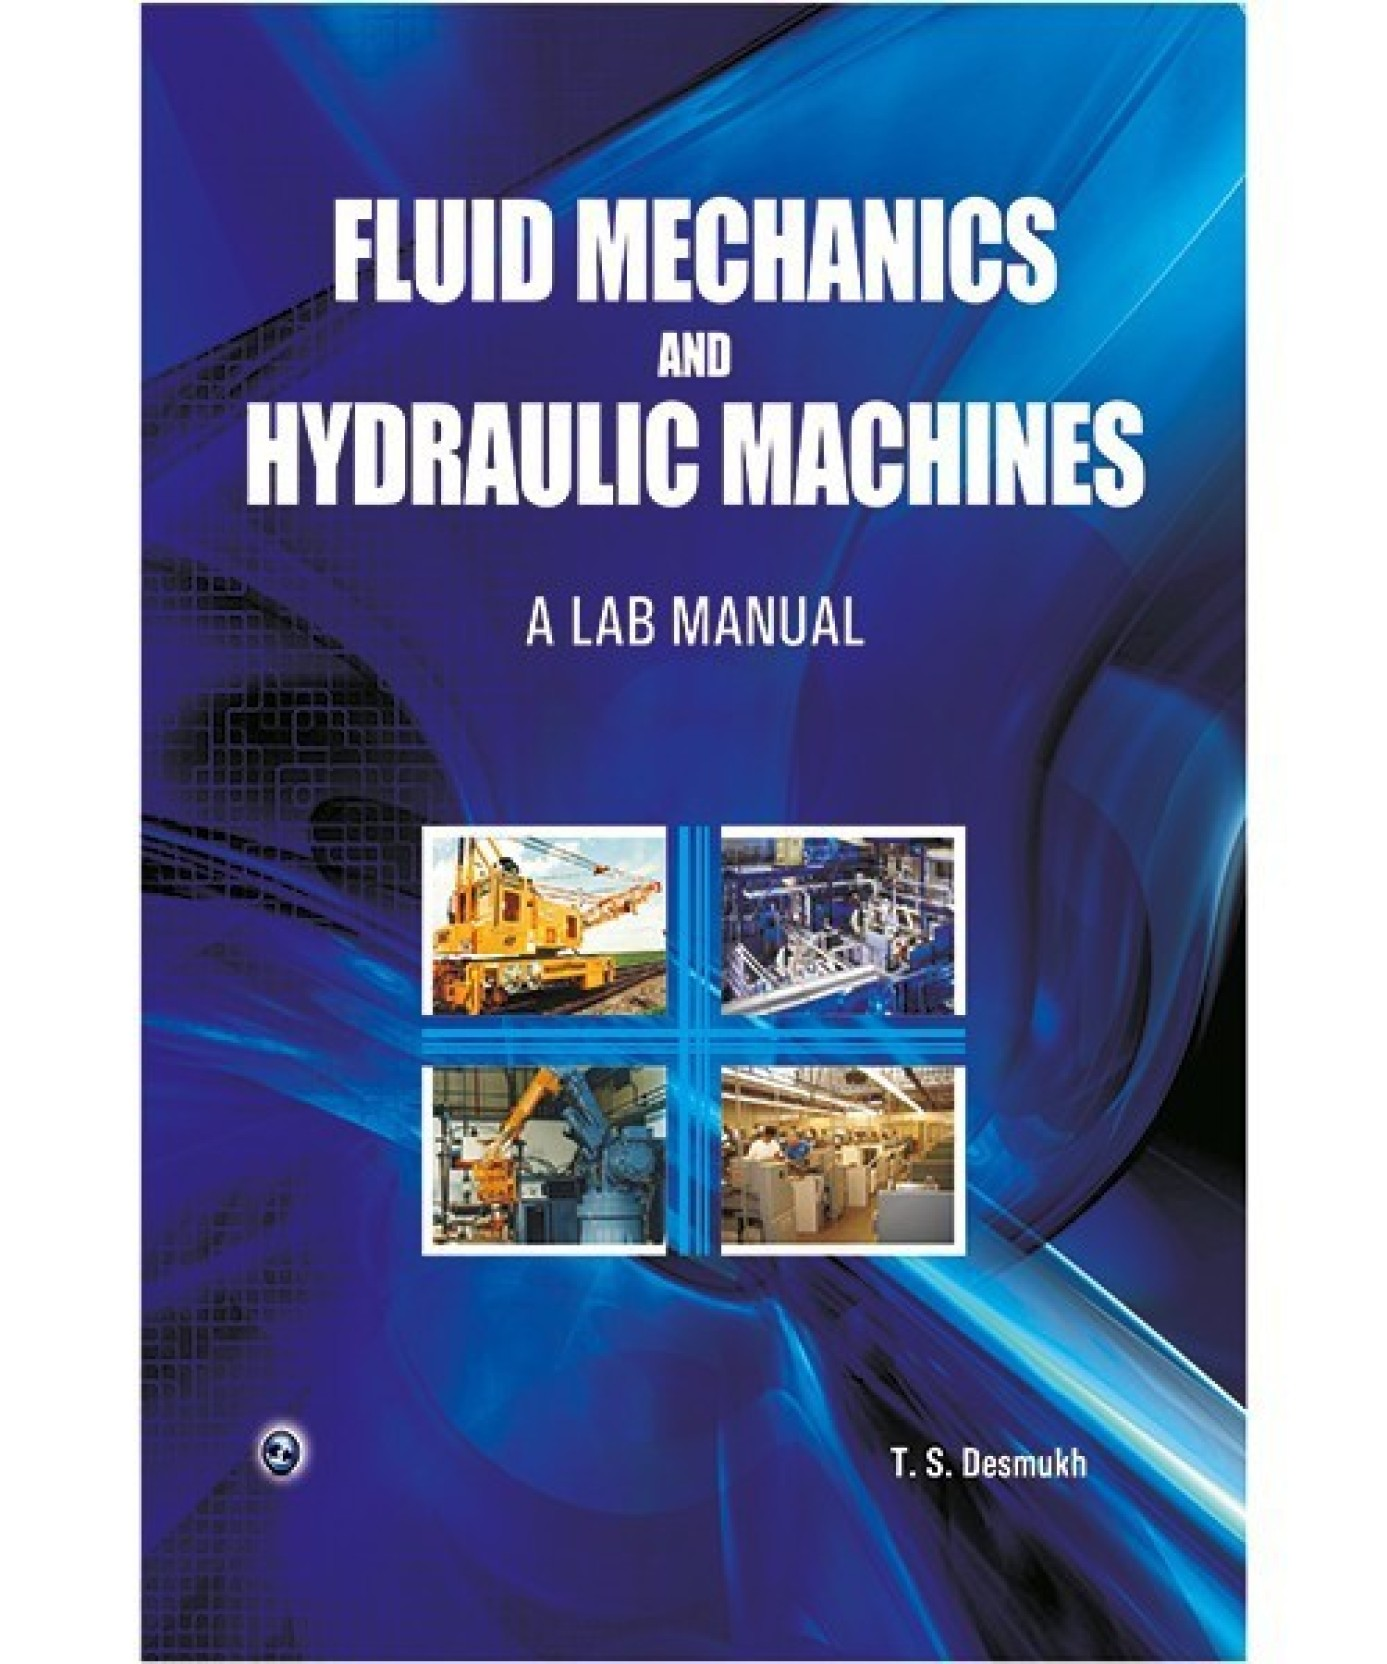 Fluid Mechanics and Hydraulic Machines (A Lab Manual) First Edition. Home